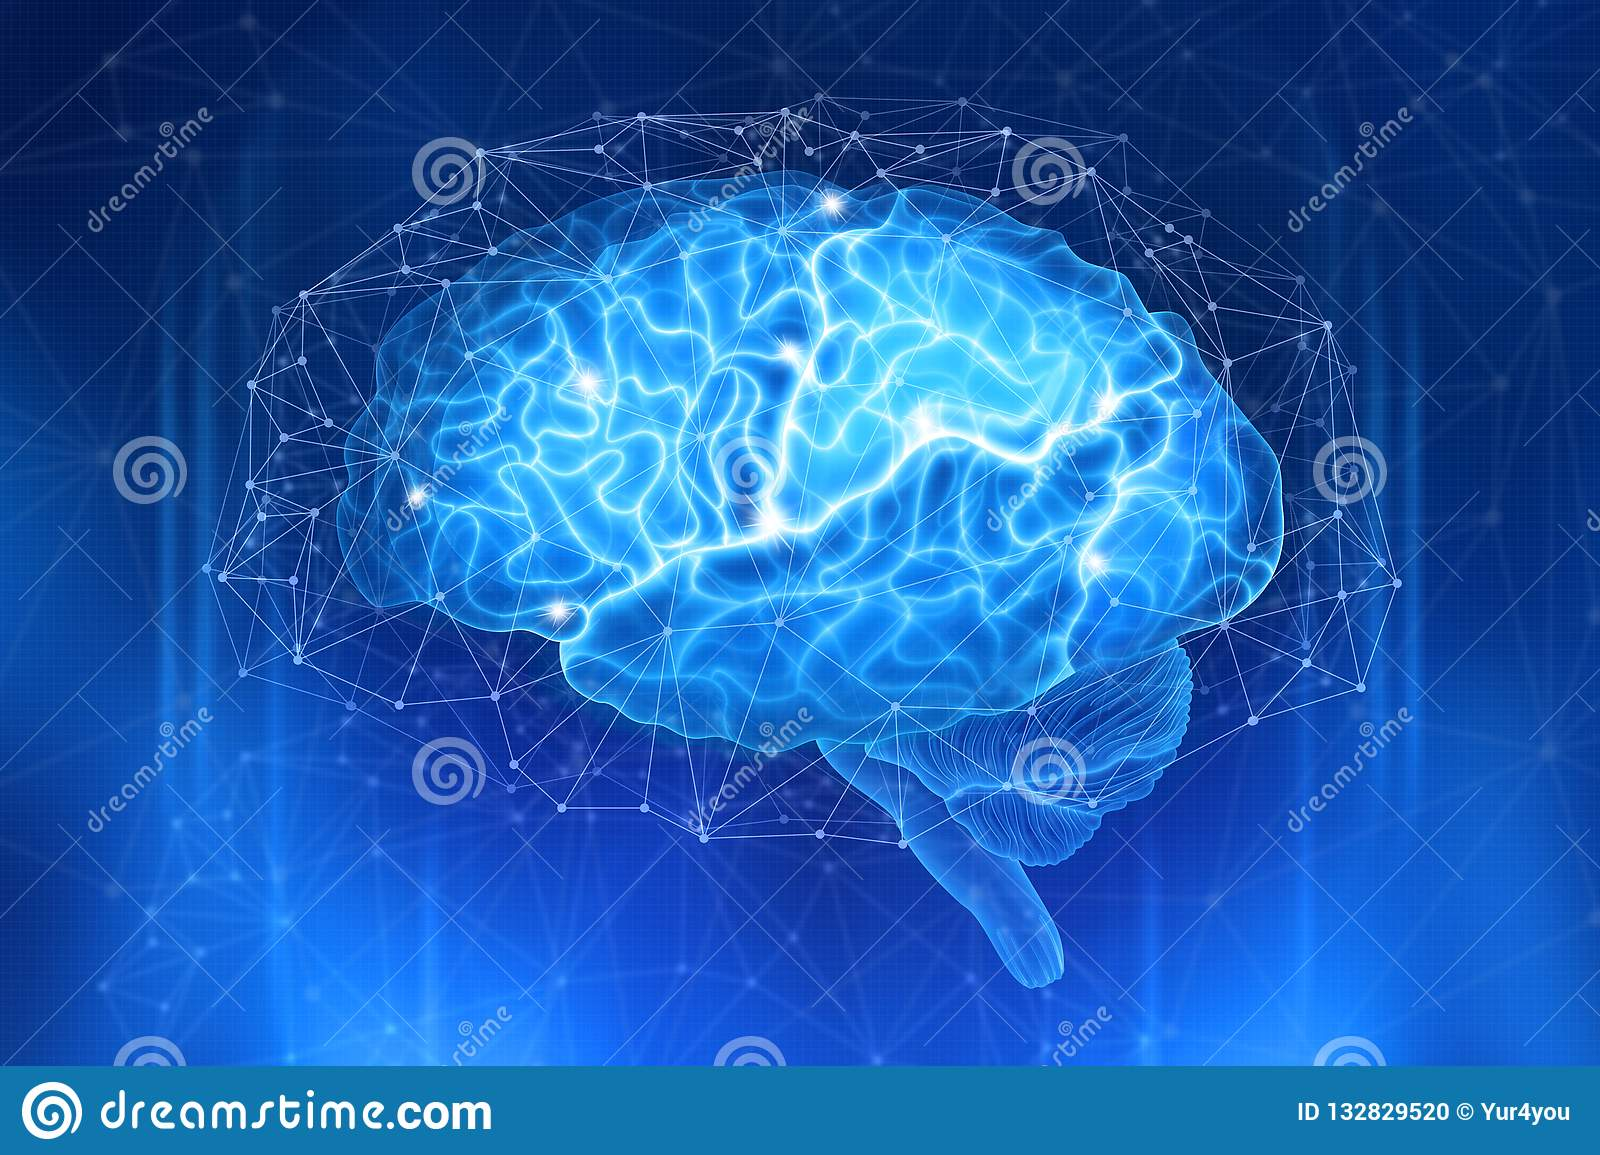 Human brain is surrounded by a network of polygons on a dark blue background